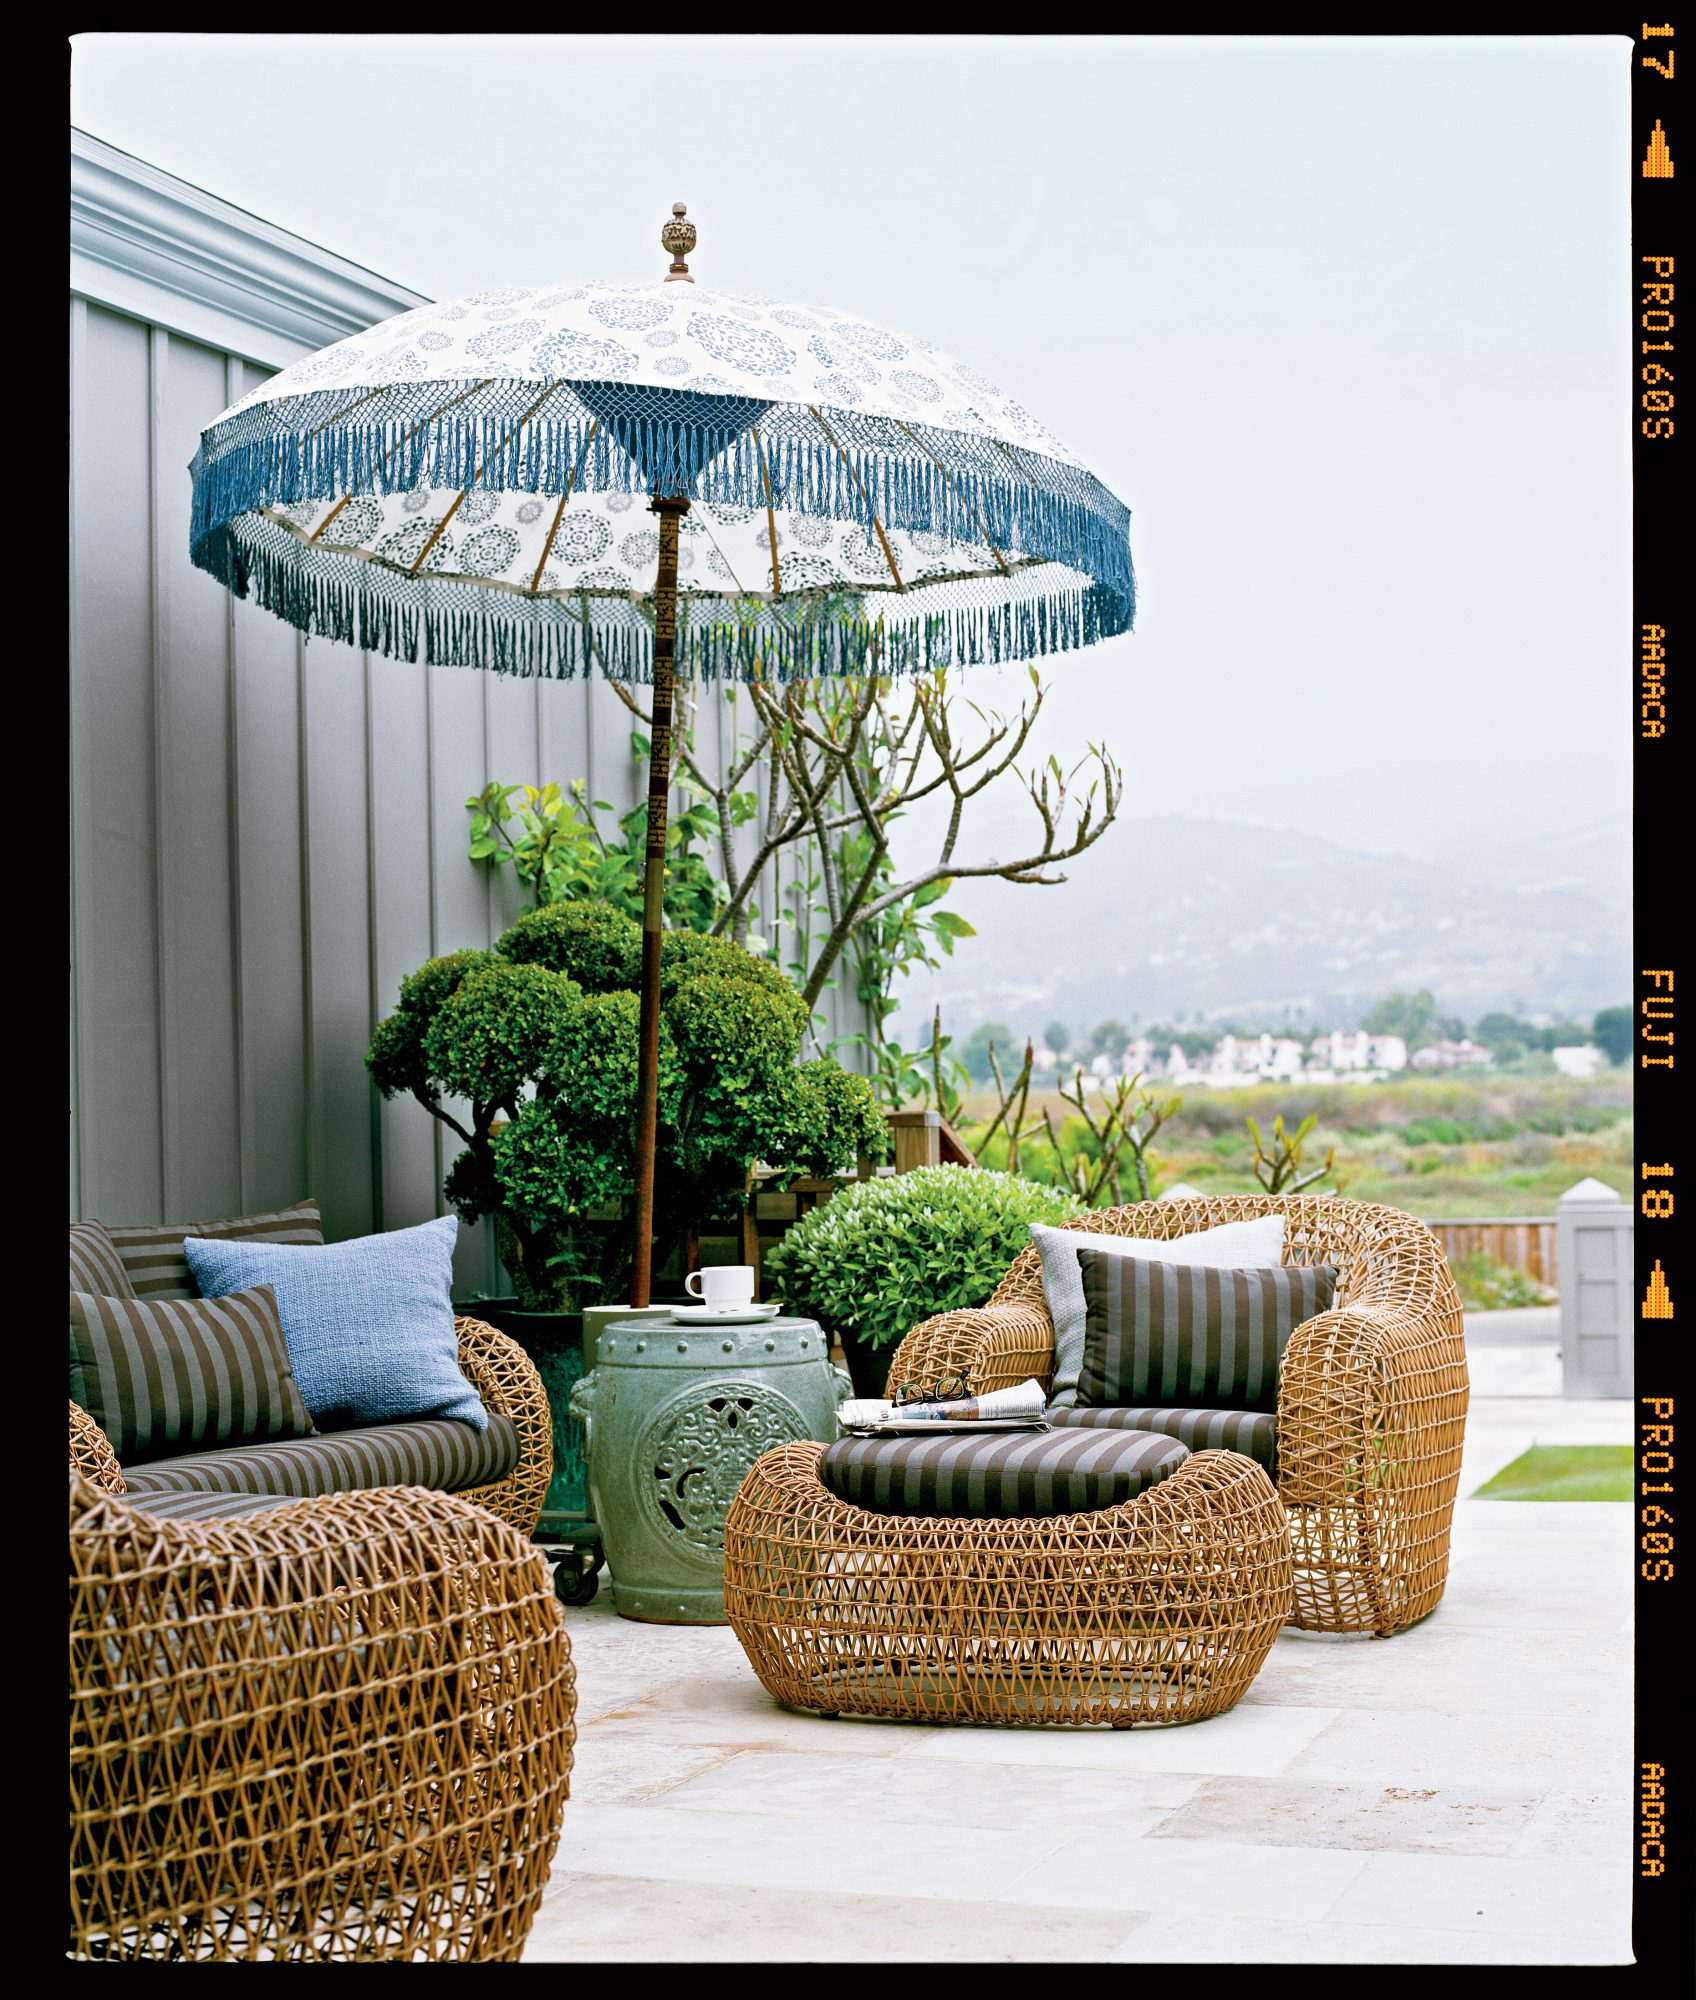 A batik-print umbrella and oversize woven furniture make a simple but stylish statement. A ceramic garden stool creates a space-saving side table on the petite patio.